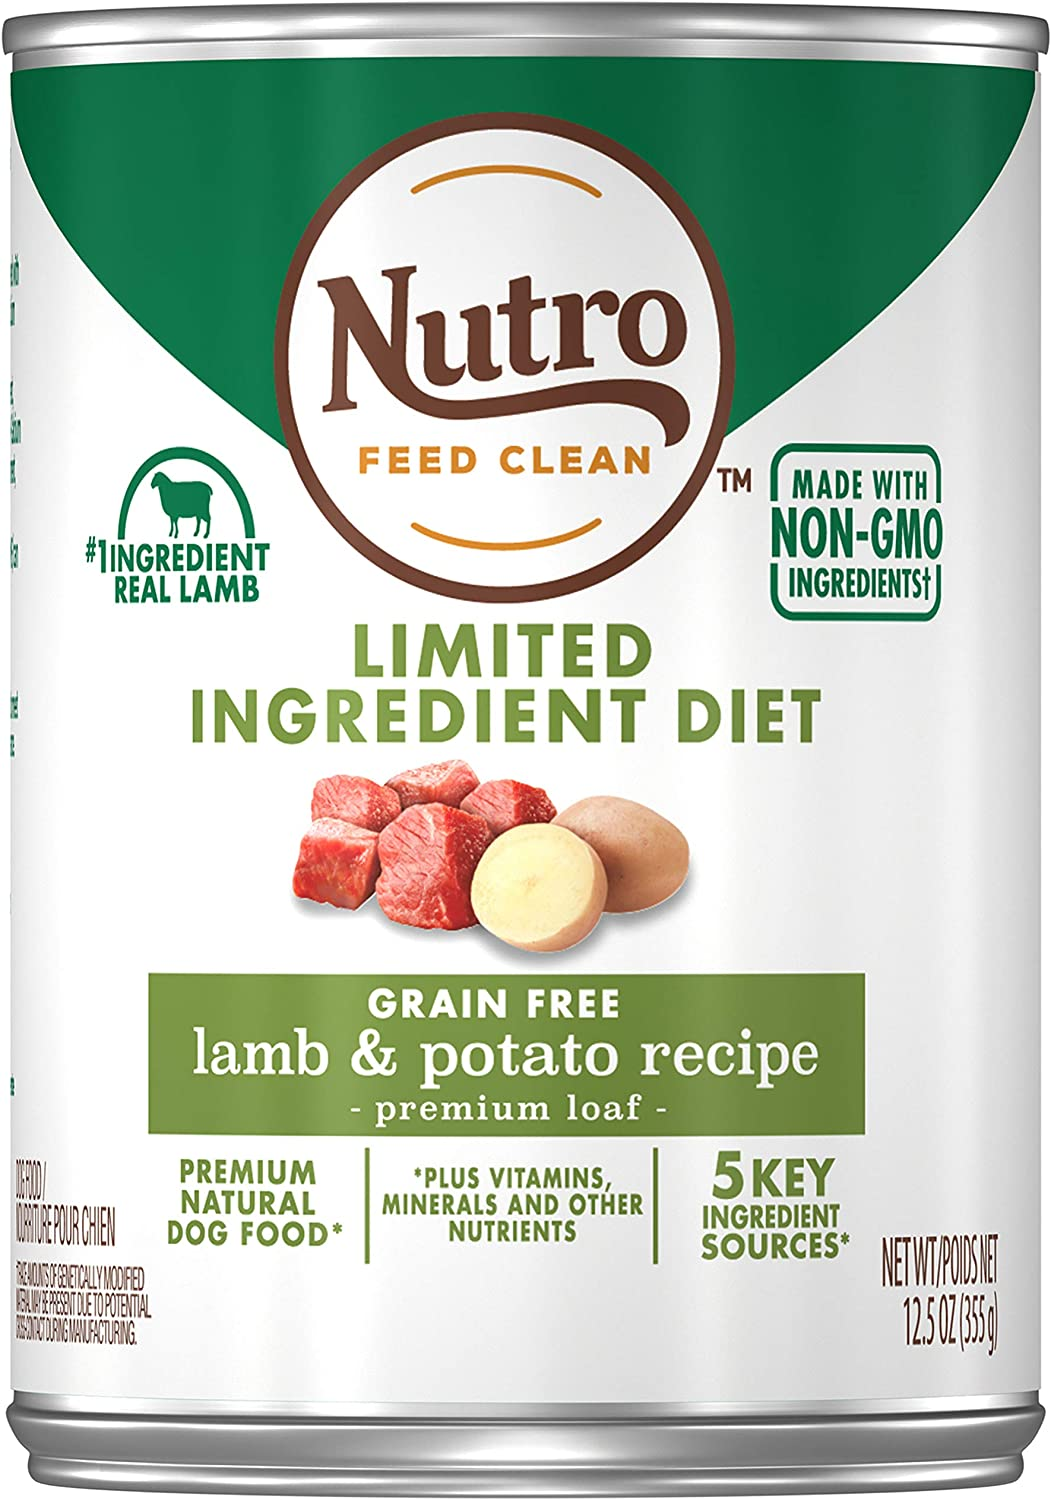 7. Nutro Limited Ingredient Diet Premium Loaf Grain-Free